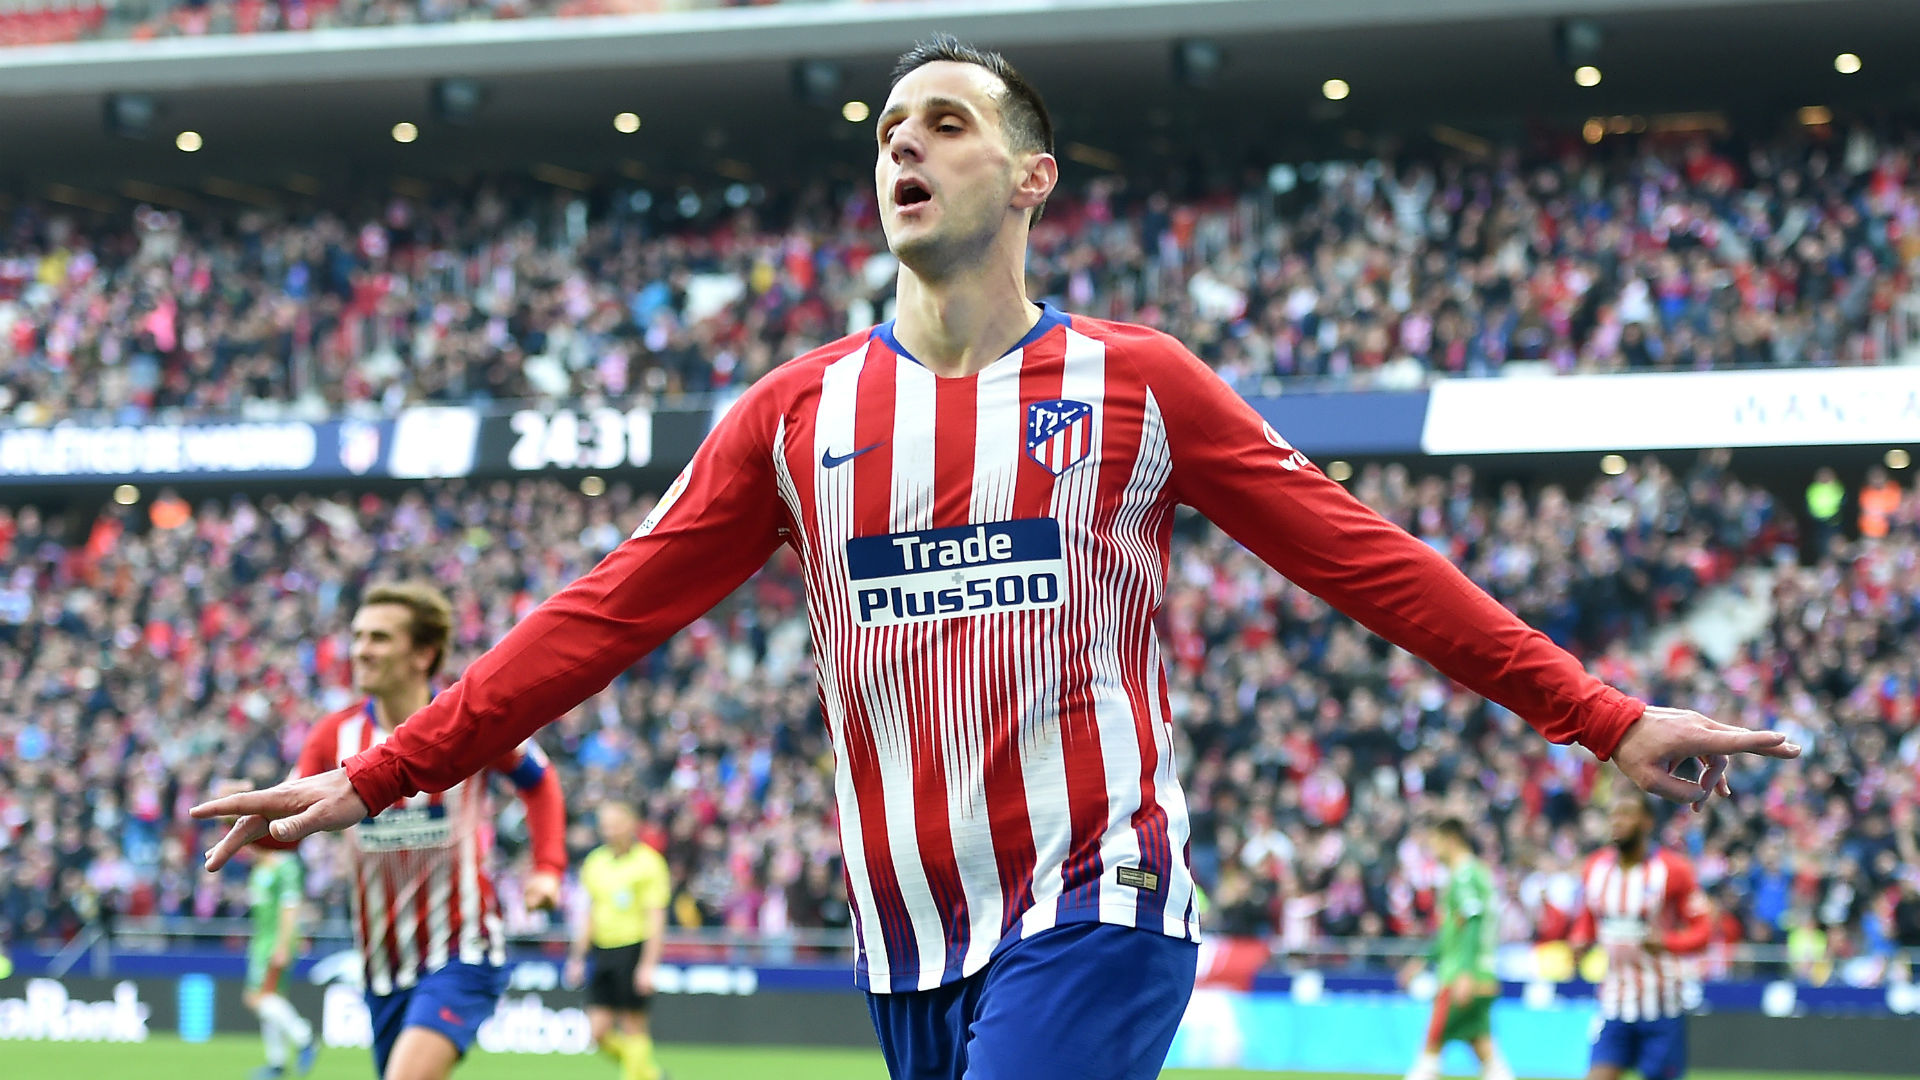 Atletico need in-form Kalinic - Simeone